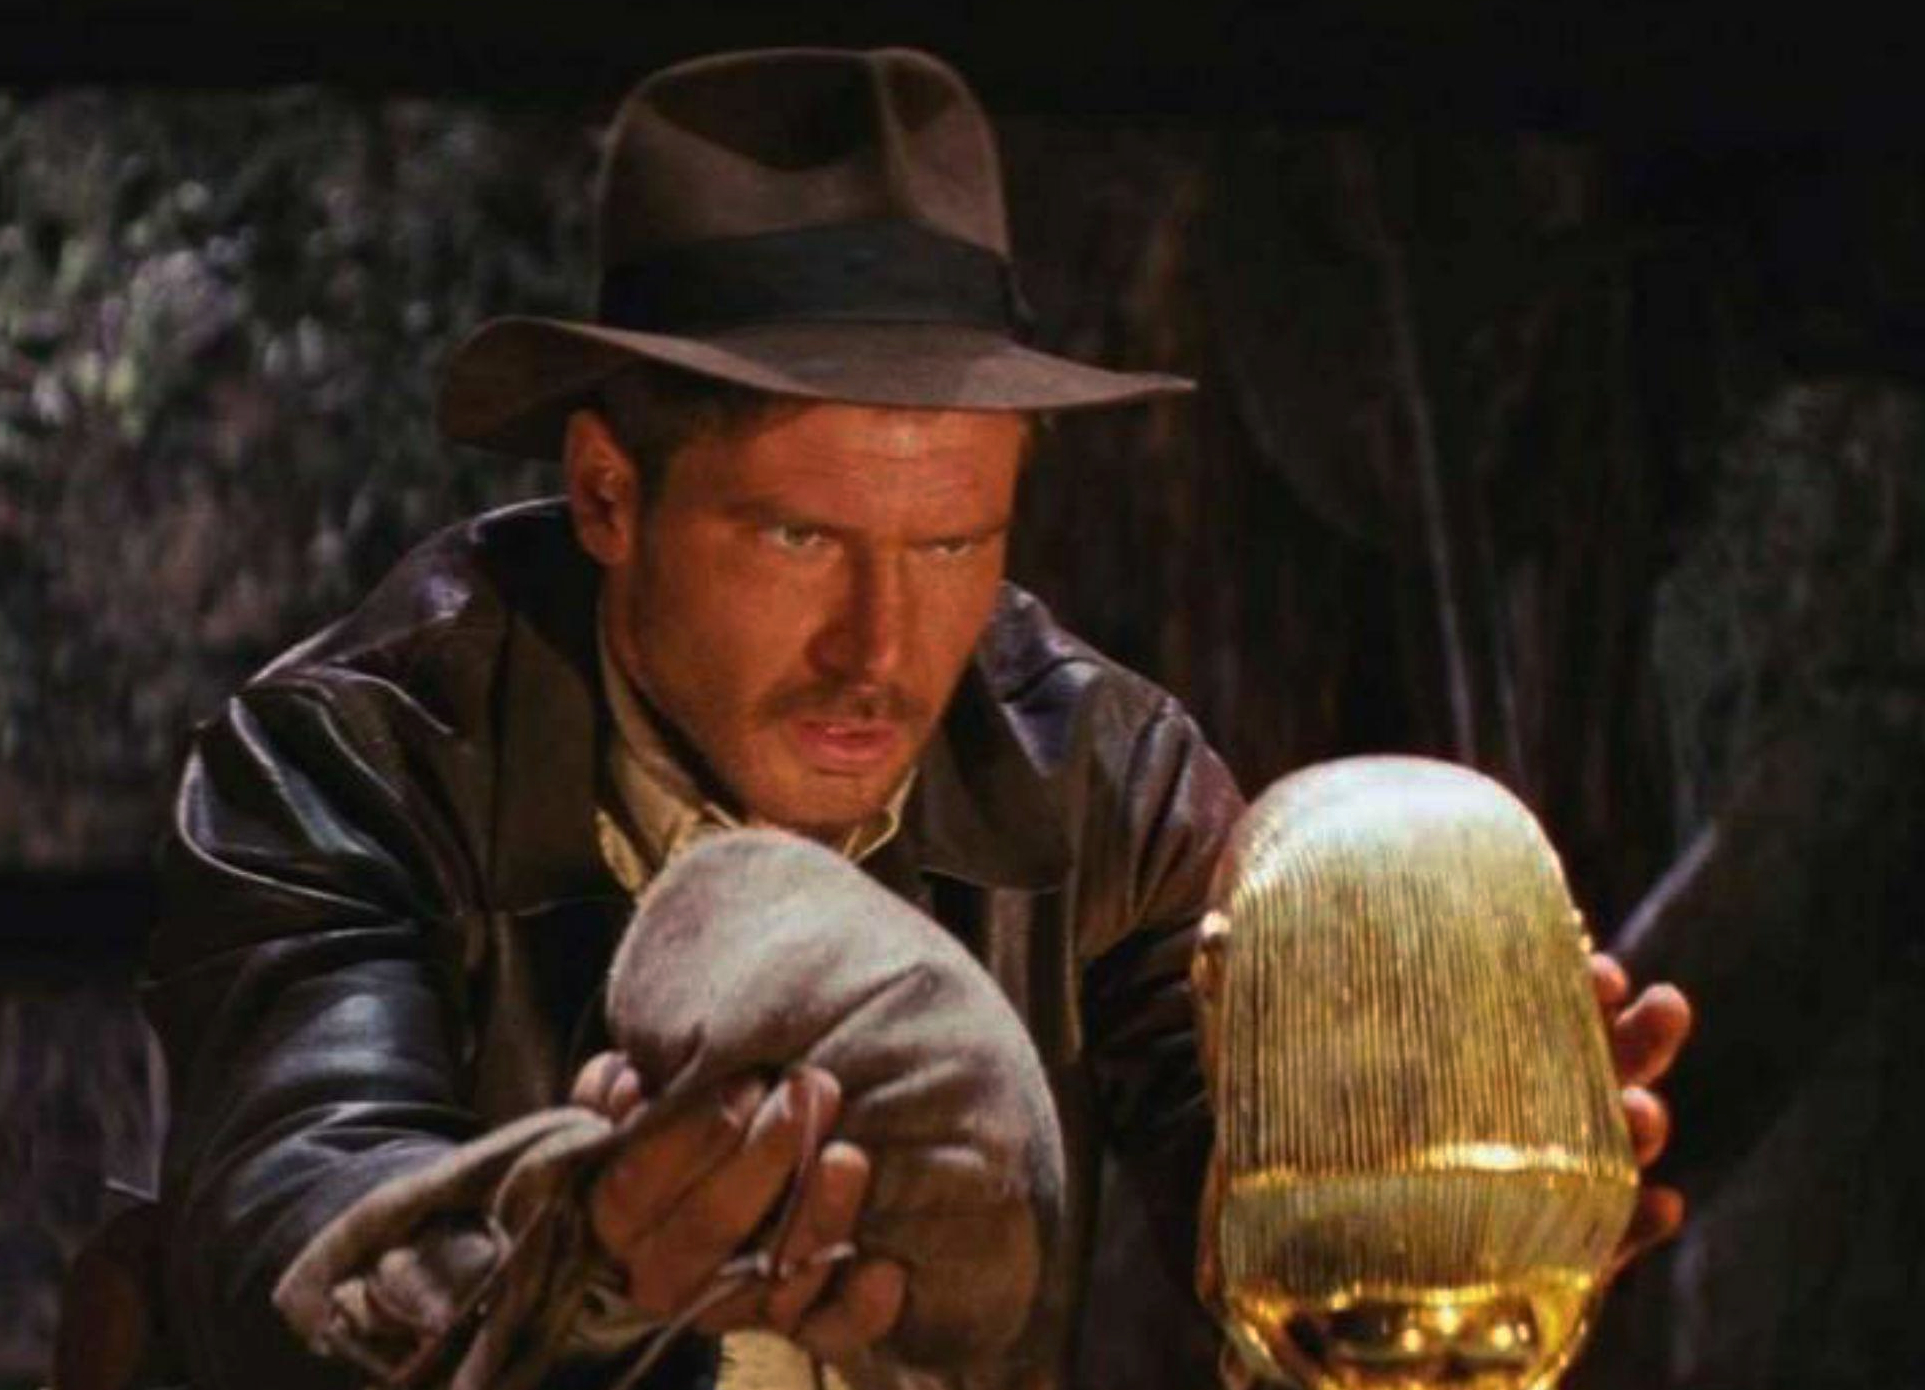 The Indiana Jones movies